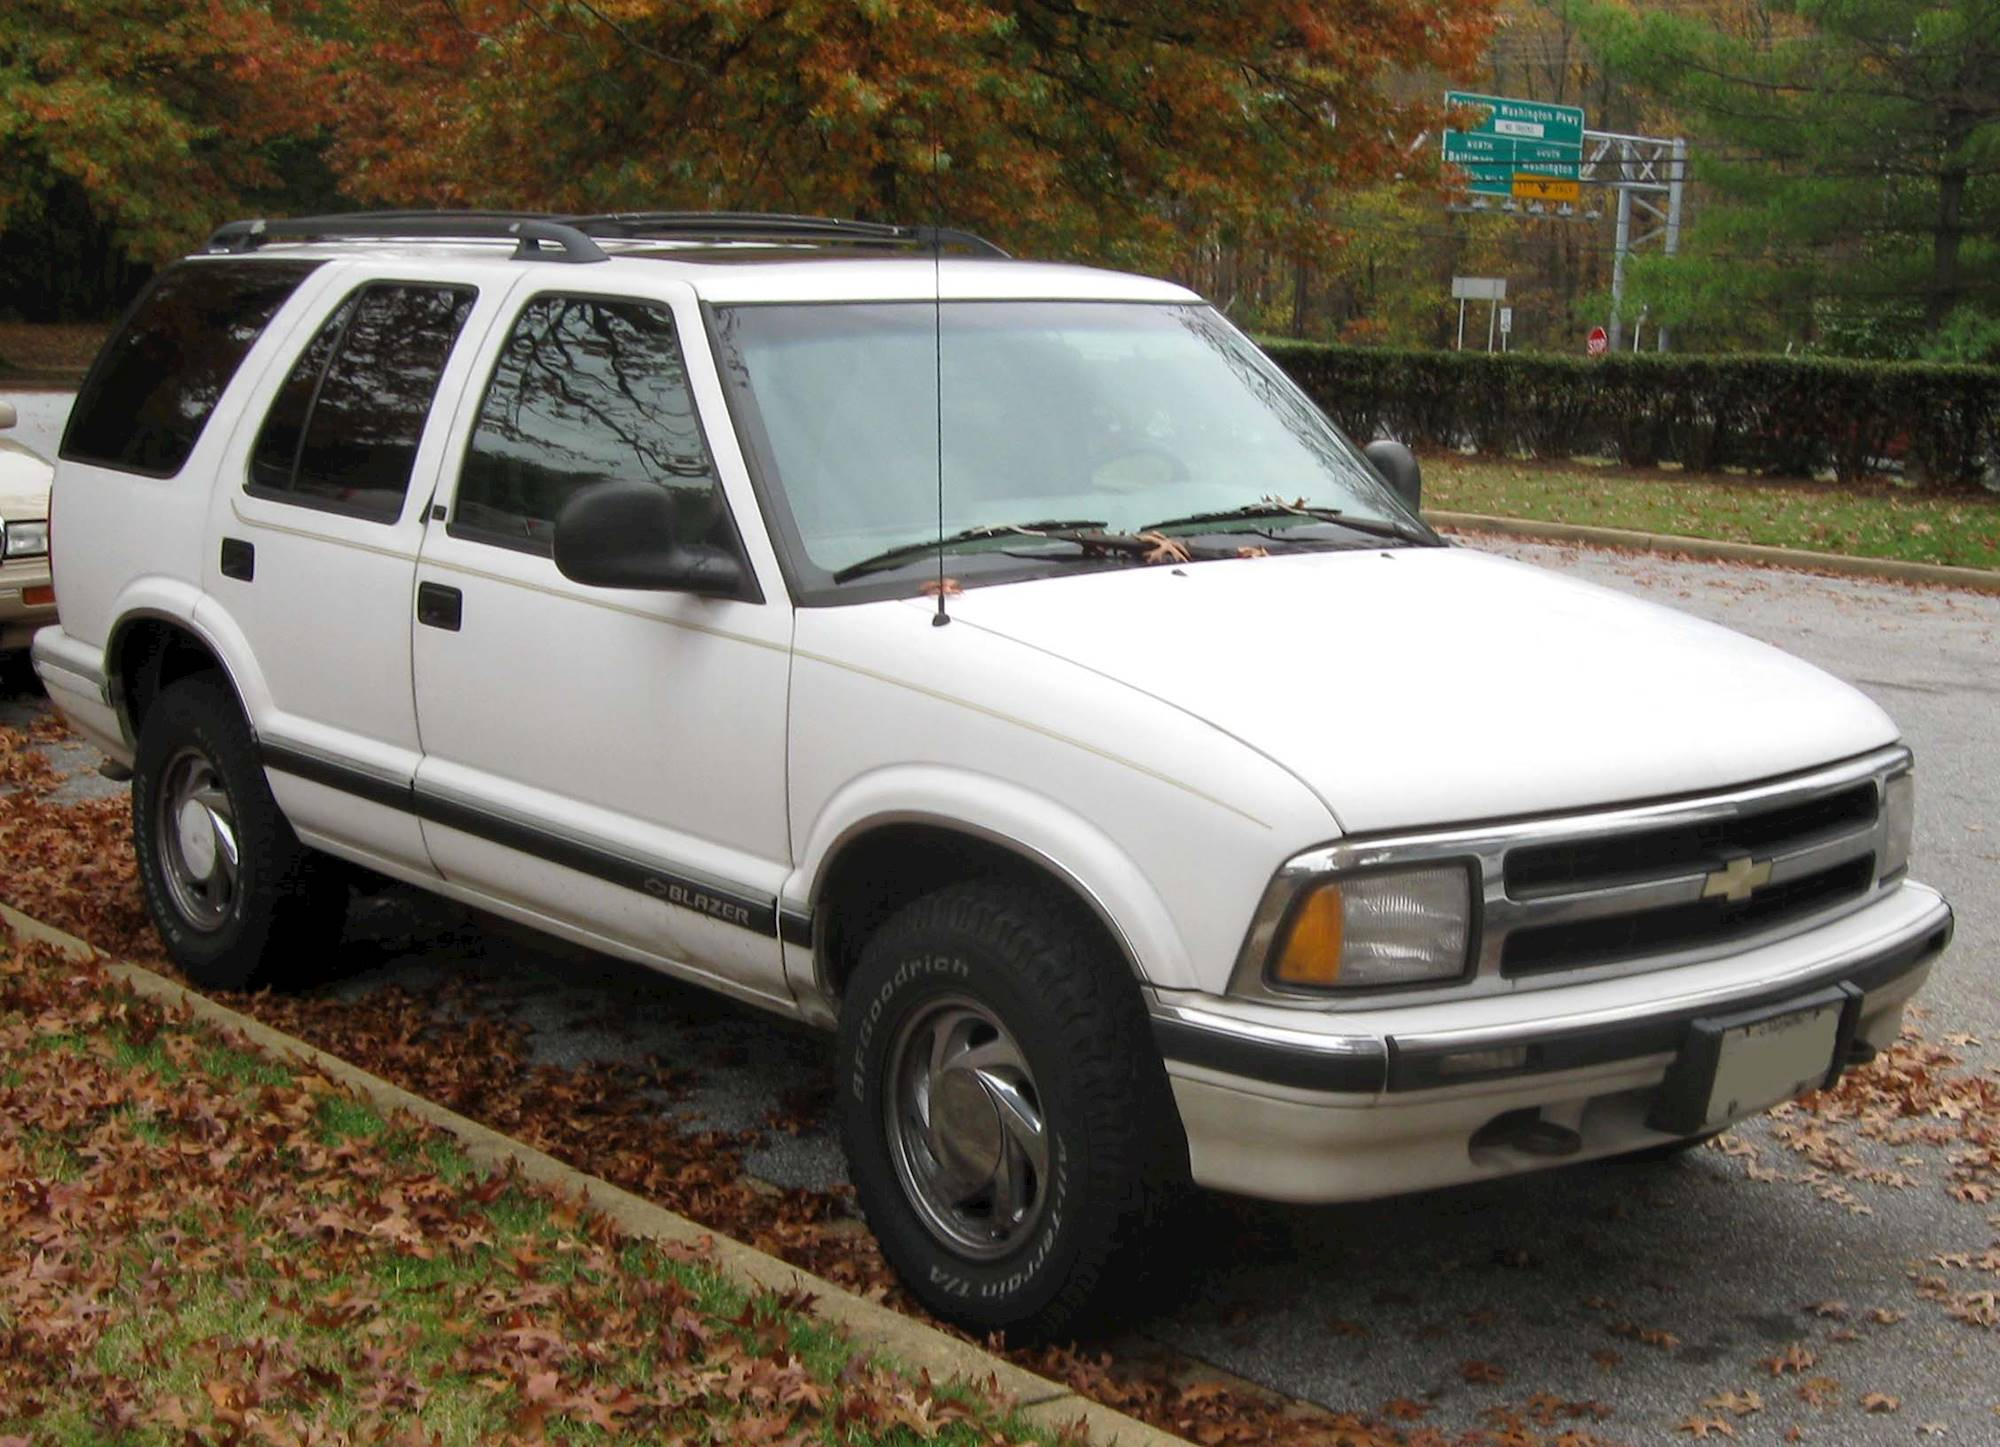 1993 Gmc Jimmy Slt 4dr Suv 4 3l V6 4x4 Manual